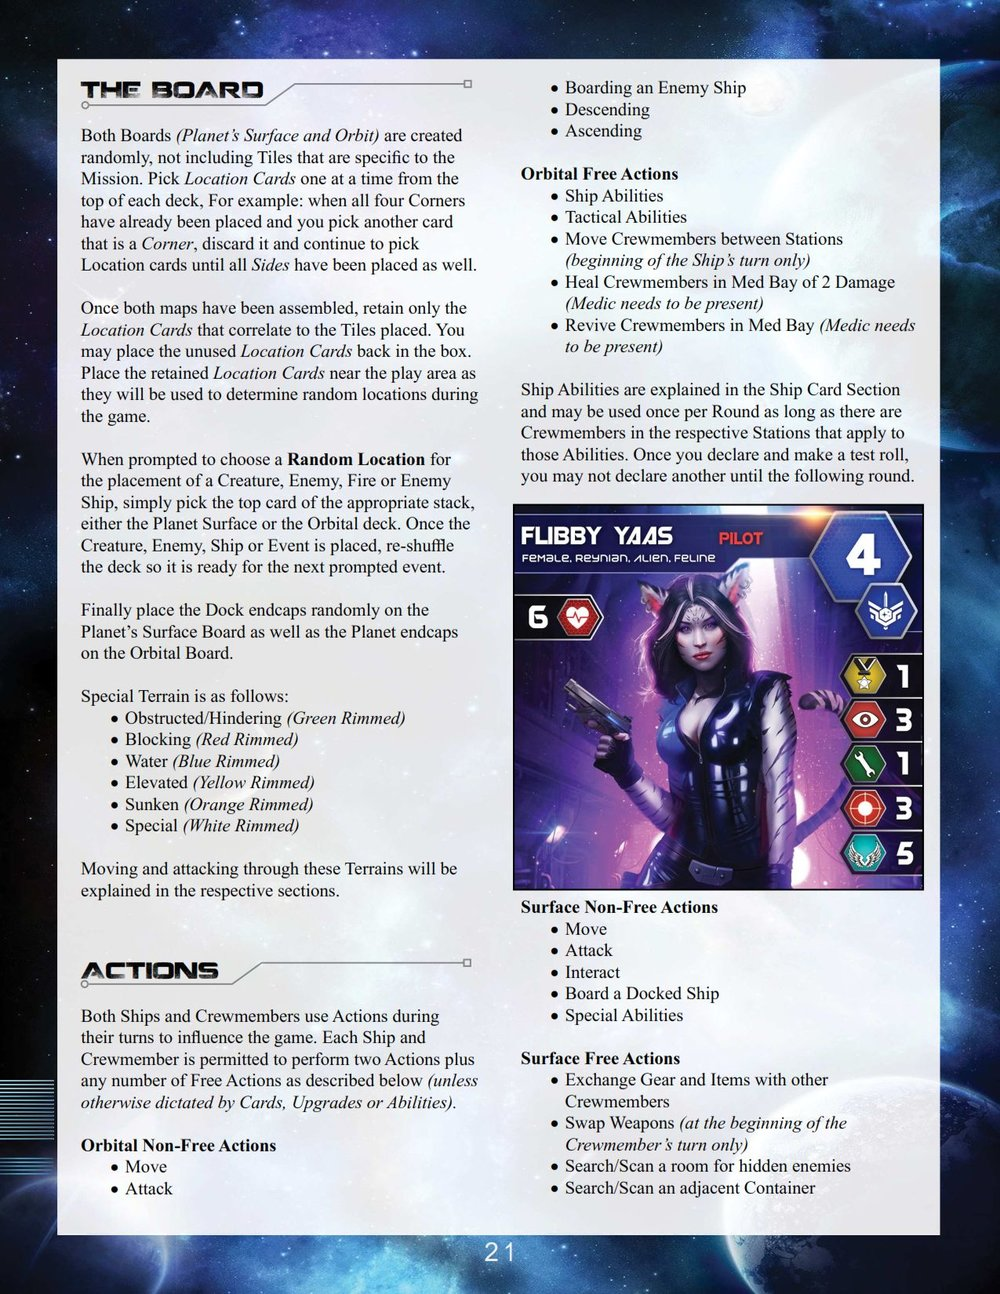 Renegades_Rule_Book_022.jpg